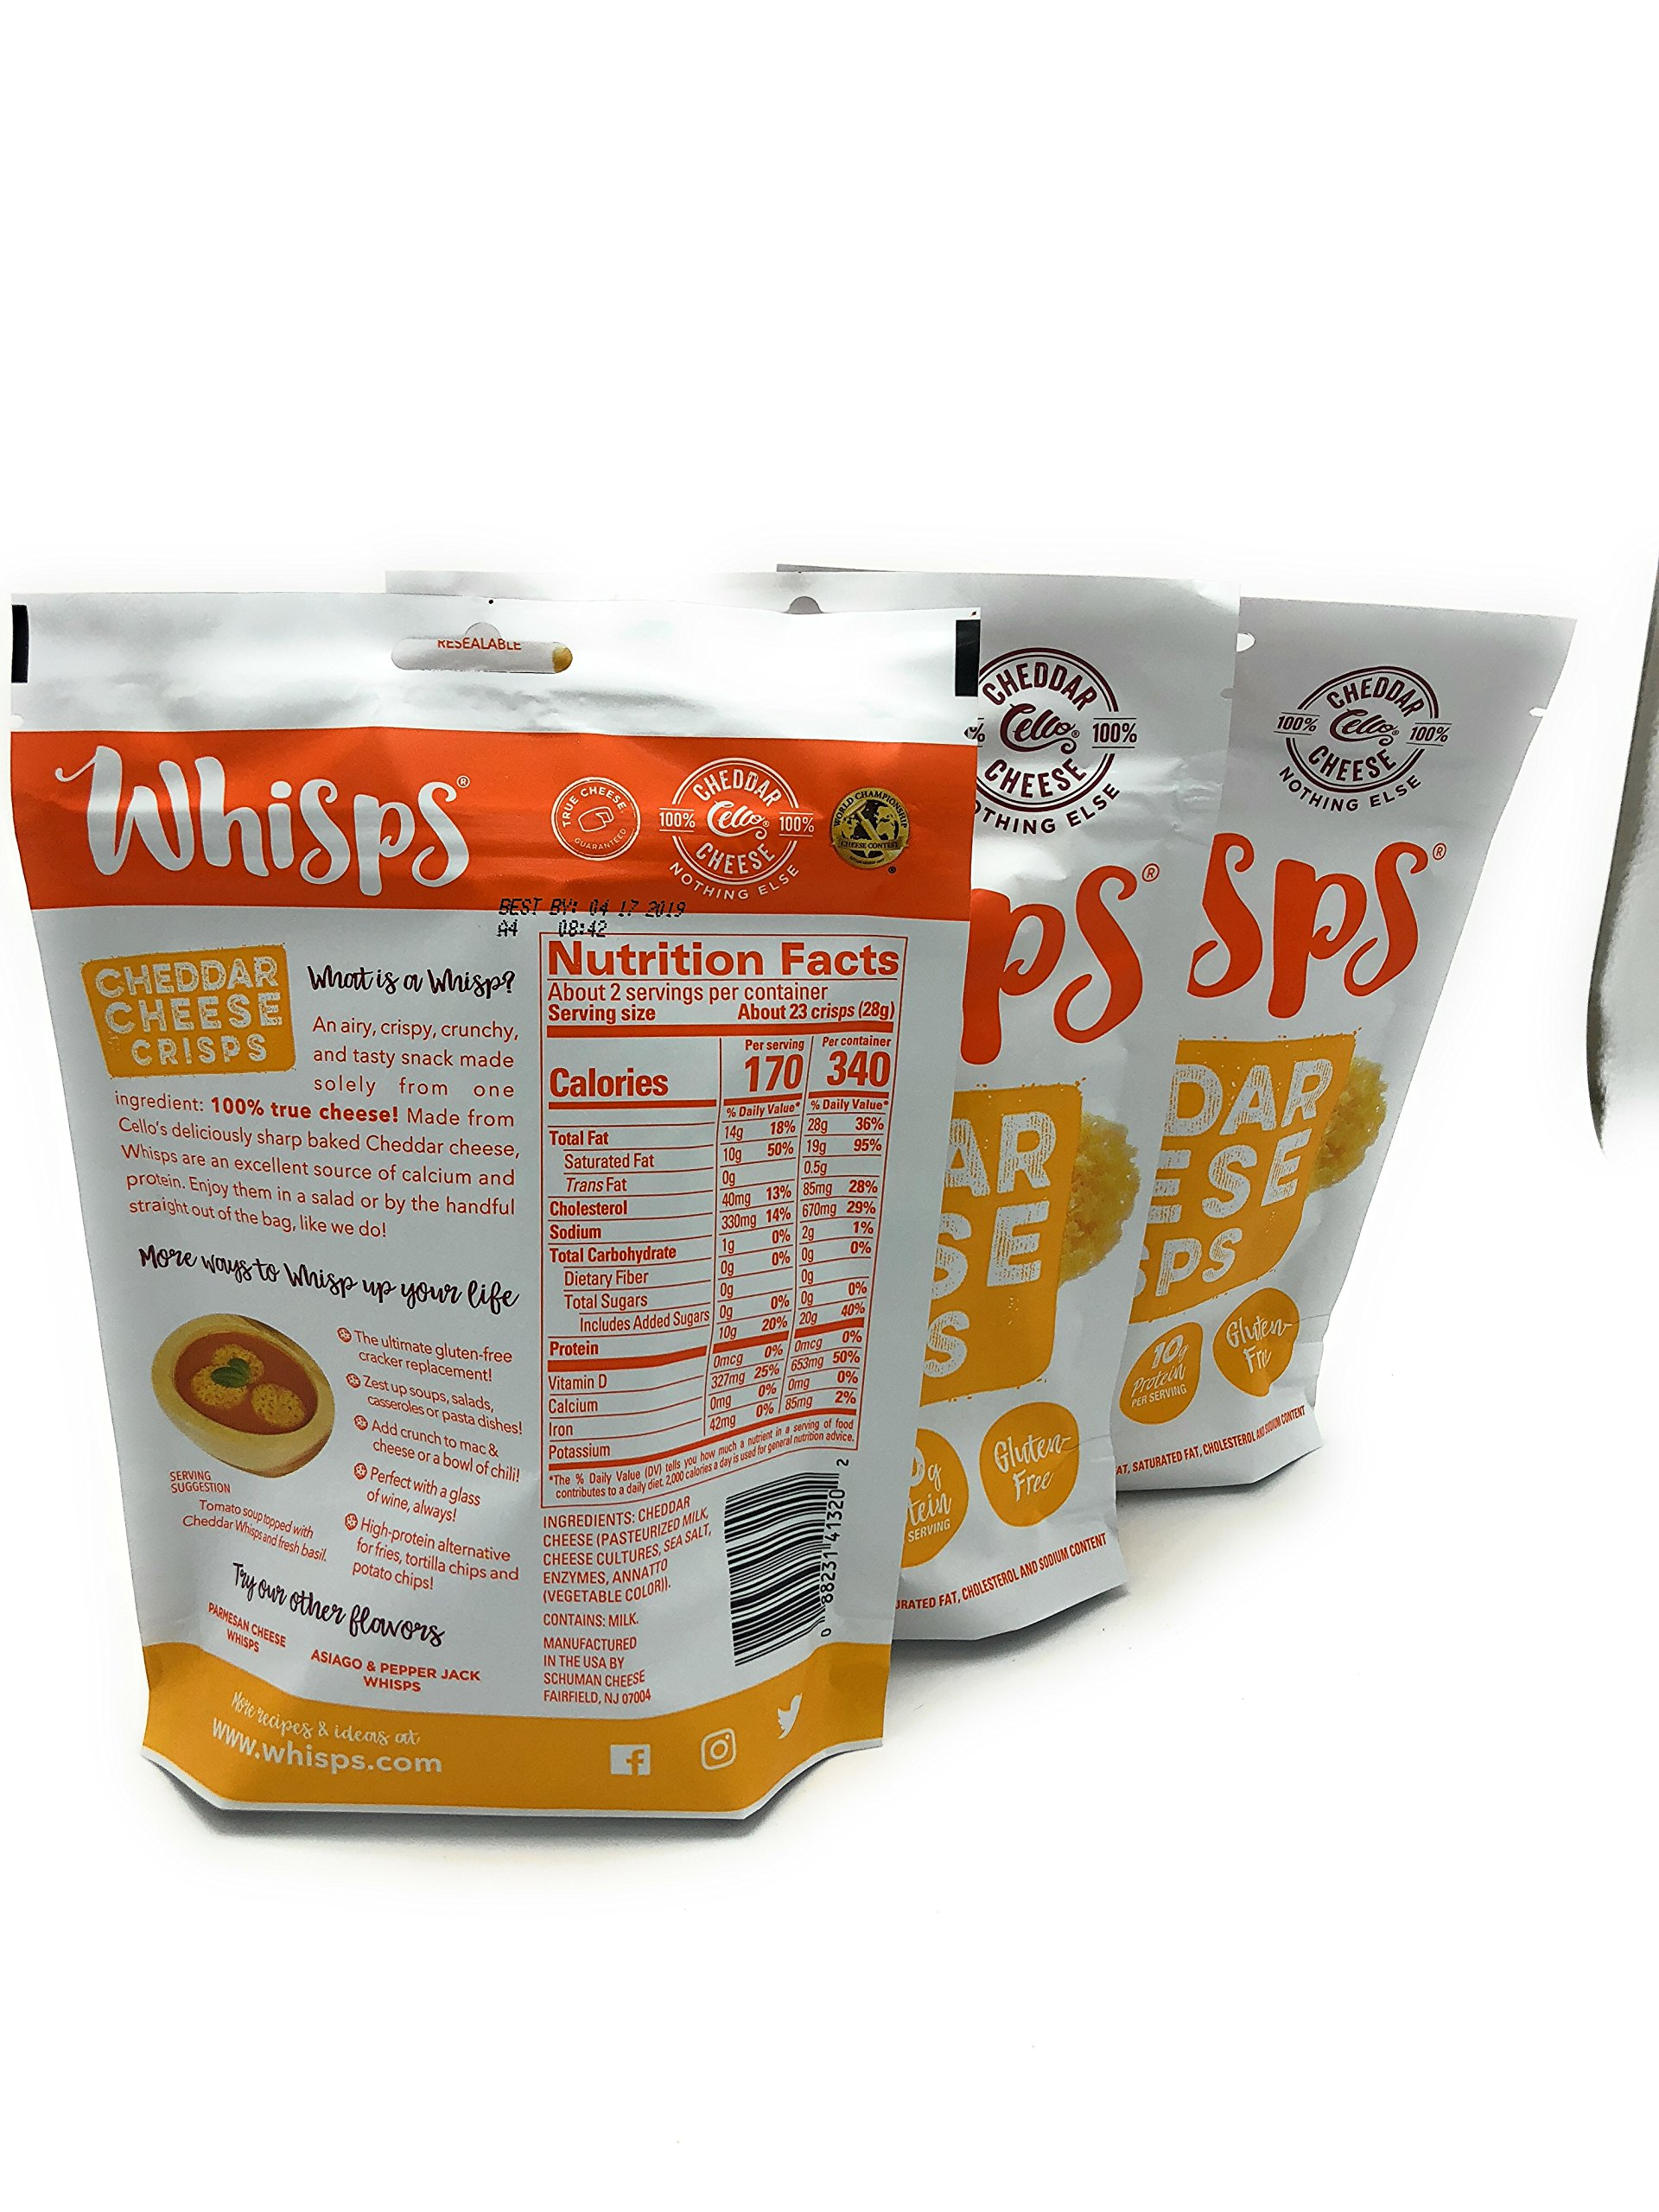 Whisps Cheddar Cheese Crisps 2.12 oz (3 Pack) by Cello (Image #2)